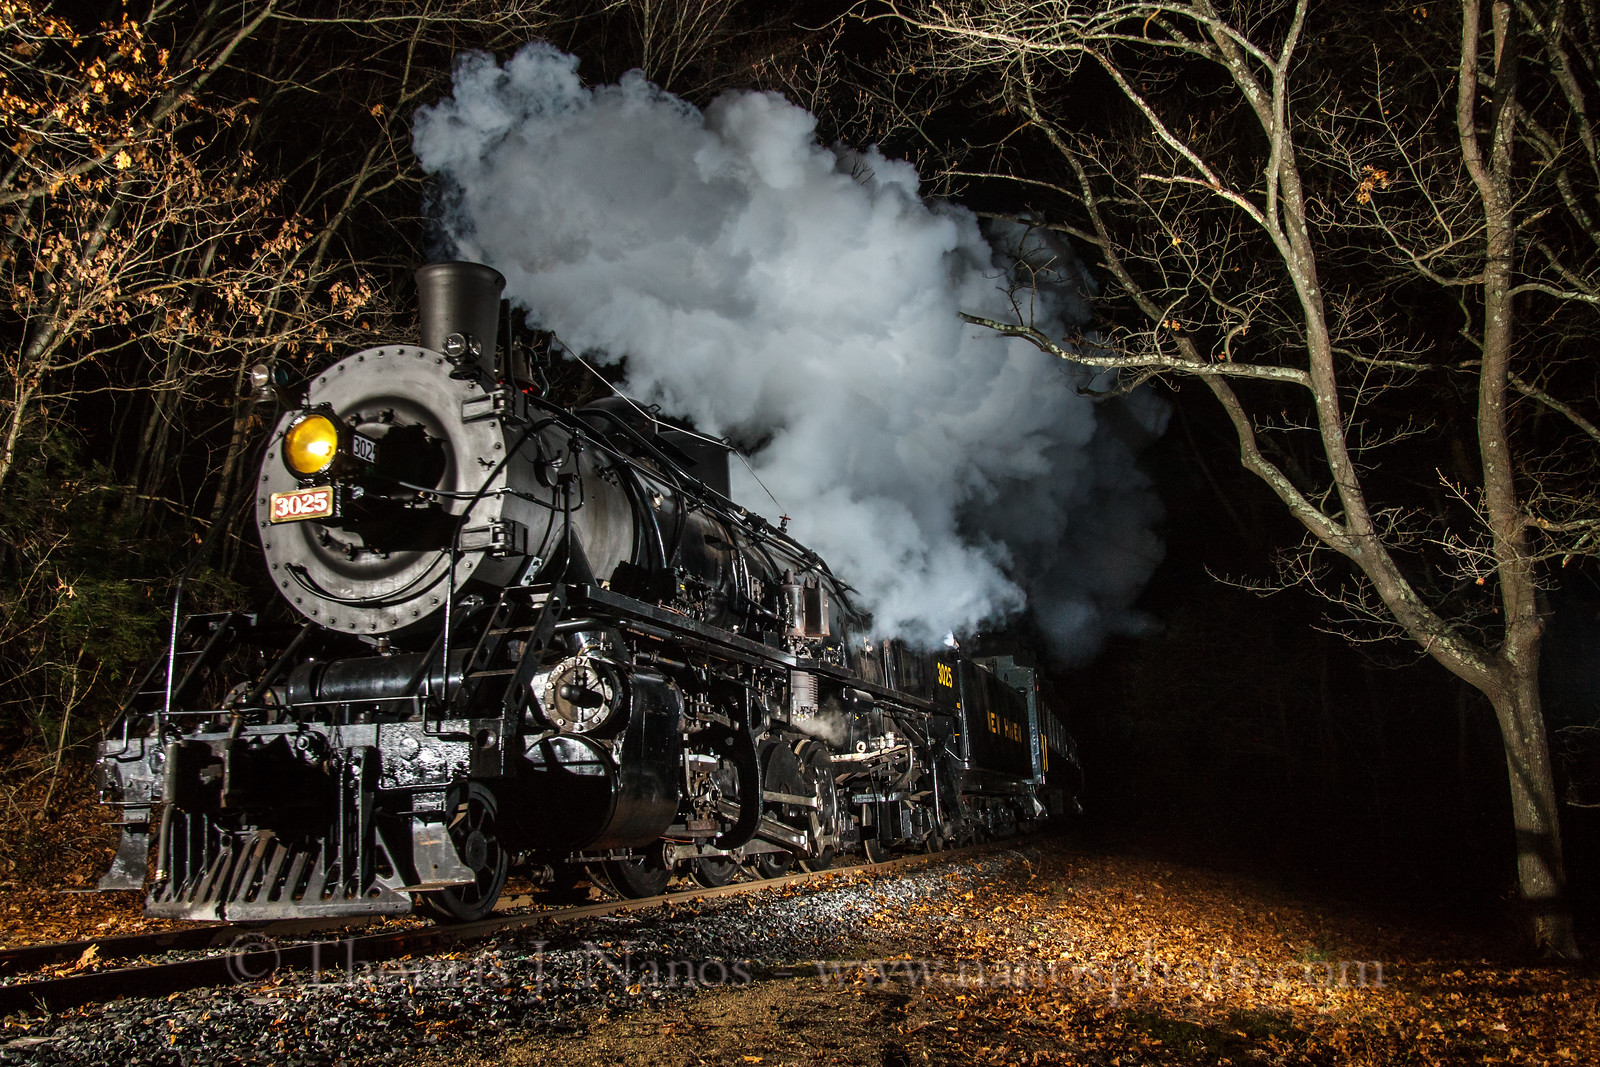 3025, on her first night of revenue service, pulls a trainload of families on the North Pole Express.  Here the train is about to cross over the Old Deep River Road crossing in the Centerbrook section of Essex, CT.